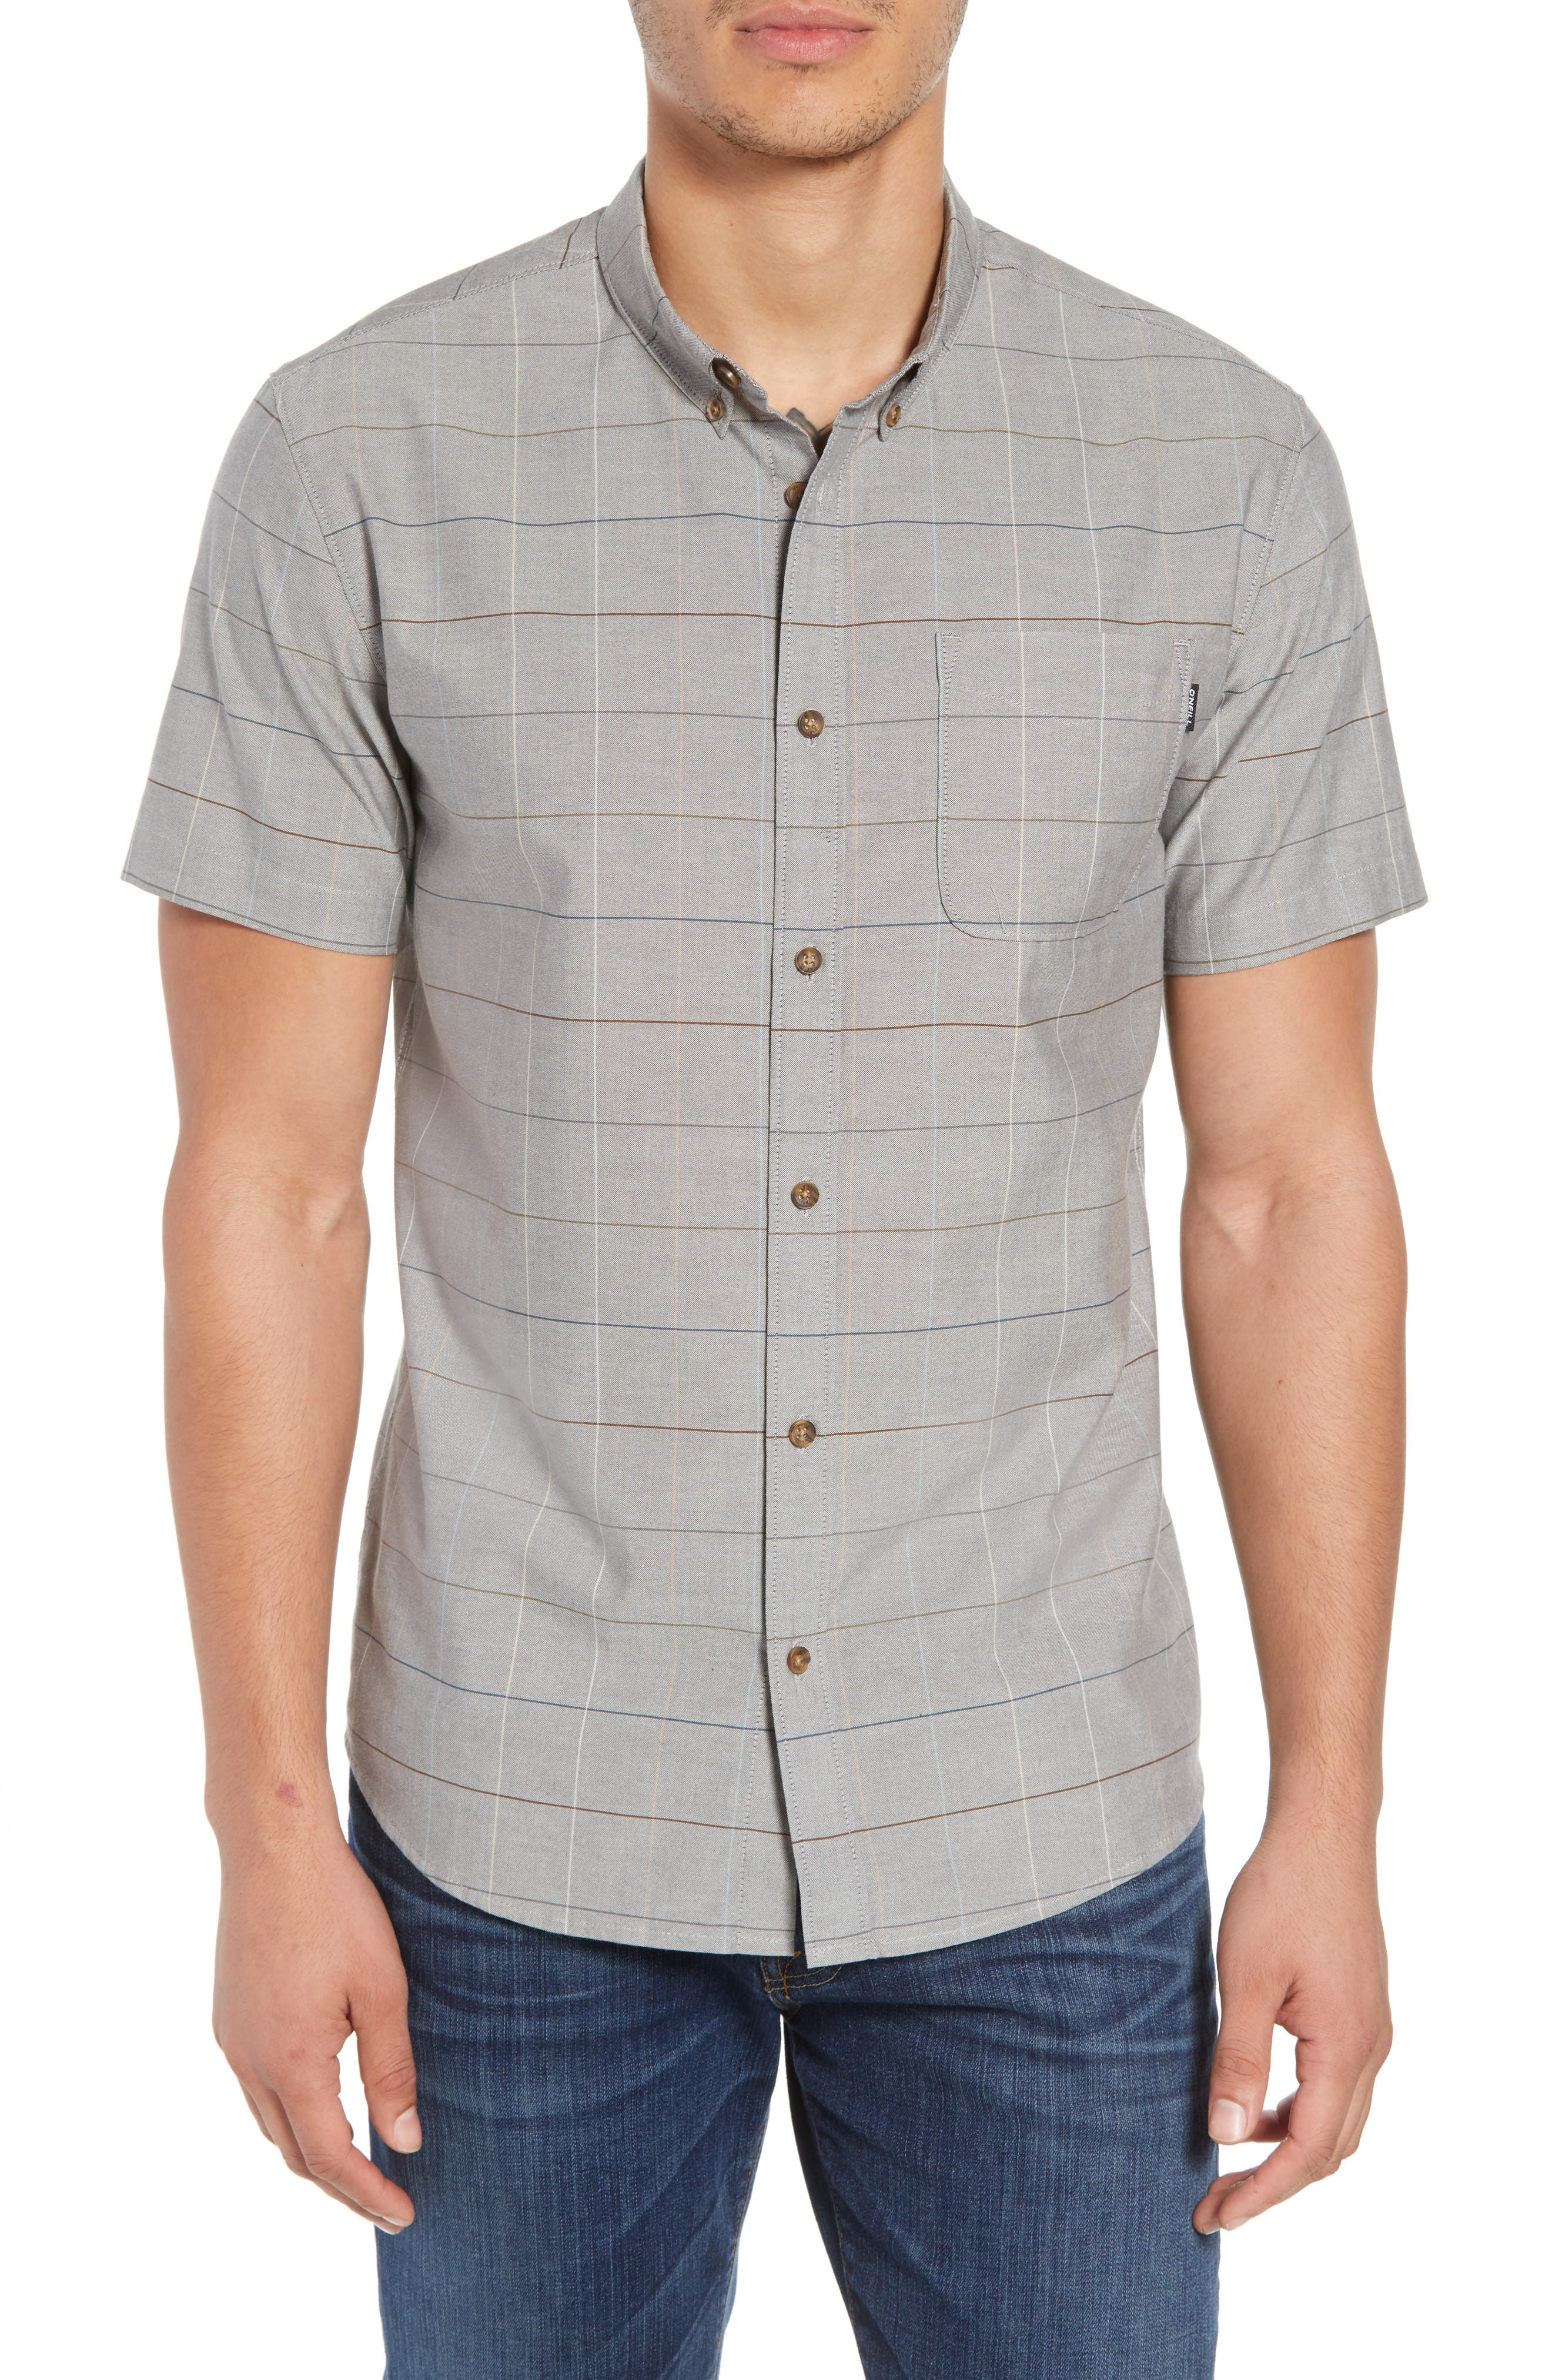 Gridlock Check Woven Shirt,                             Main thumbnail 1, color,                             020